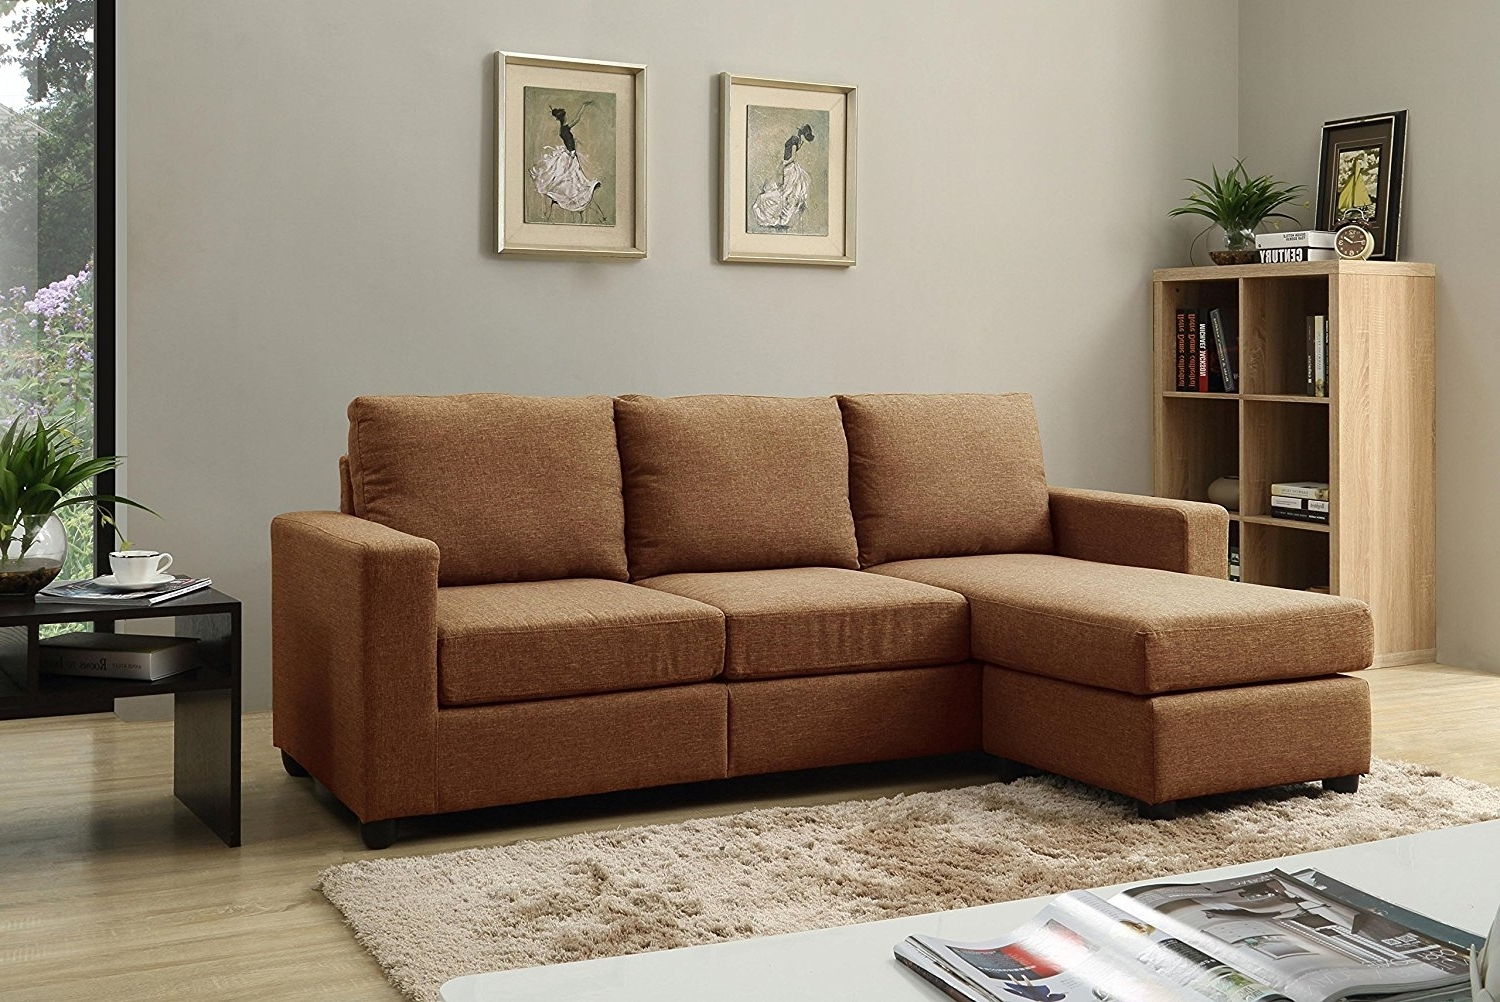 Amazon: Nhi Express Alexandra Convertible Sectional Sofa Pertaining To Widely Used Convertible Sectional Sofas (View 1 of 15)